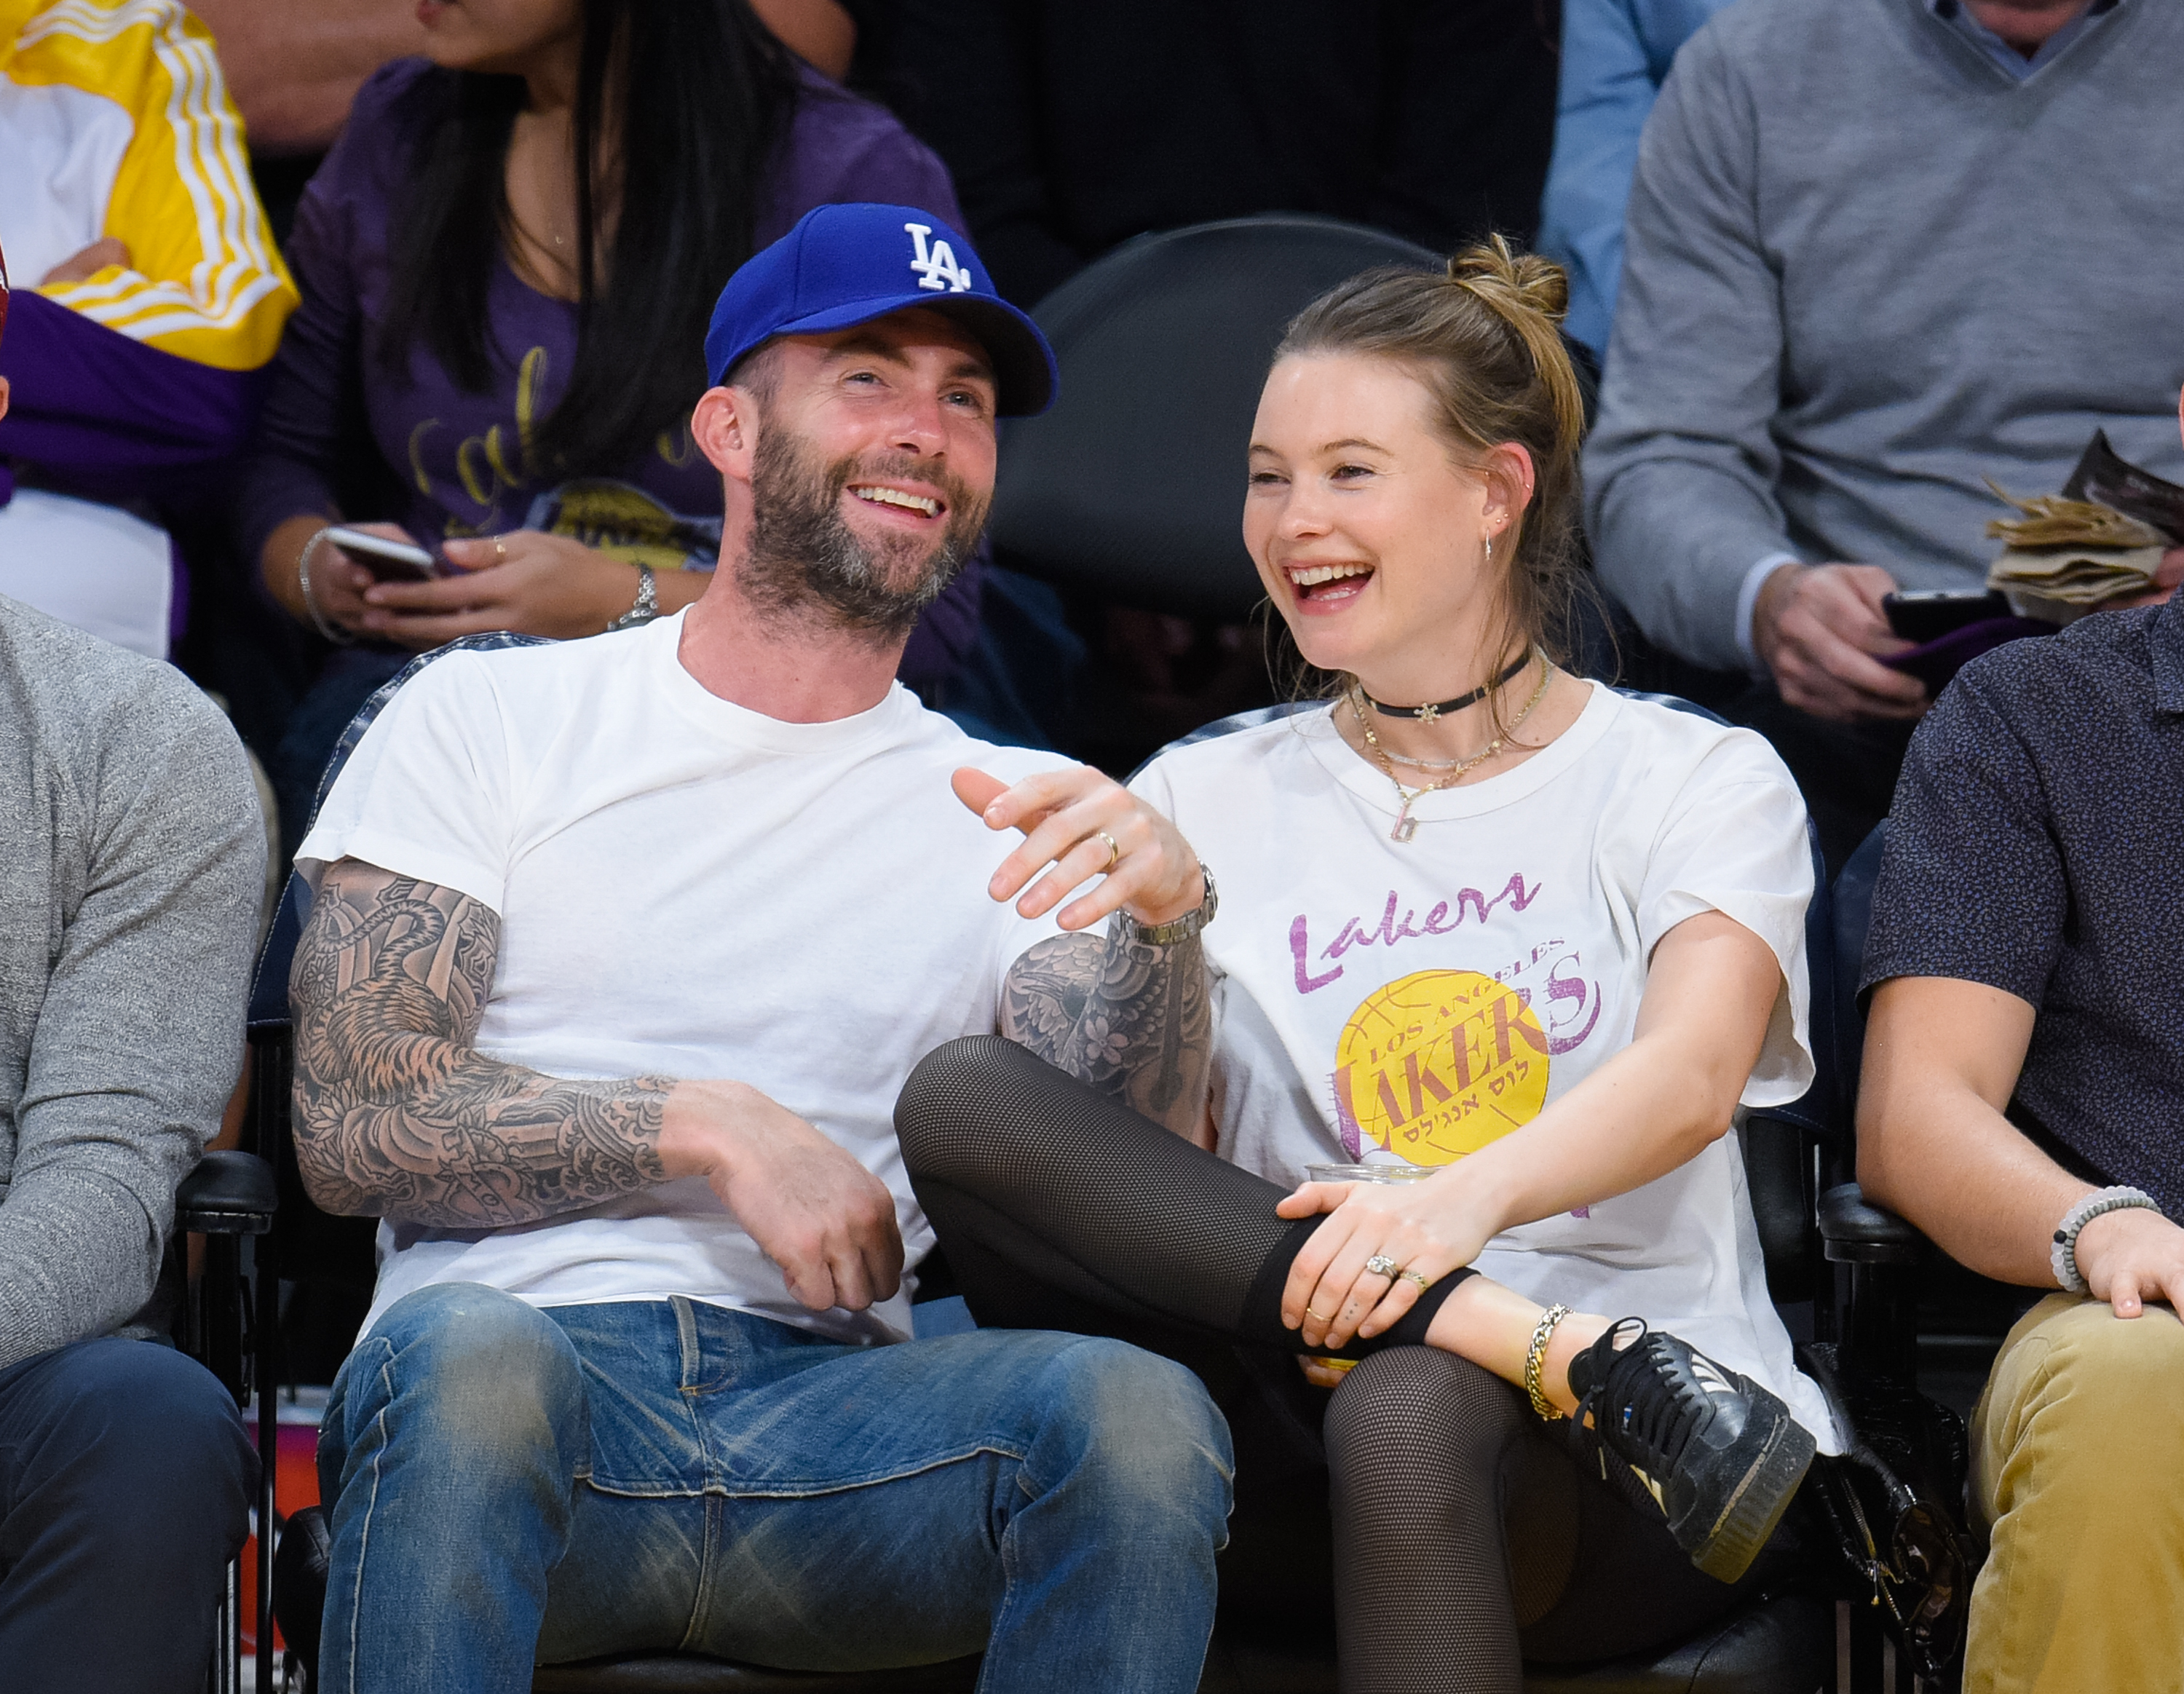 Adam Levine's post-baby date night with his wife is absolute #couplegoals